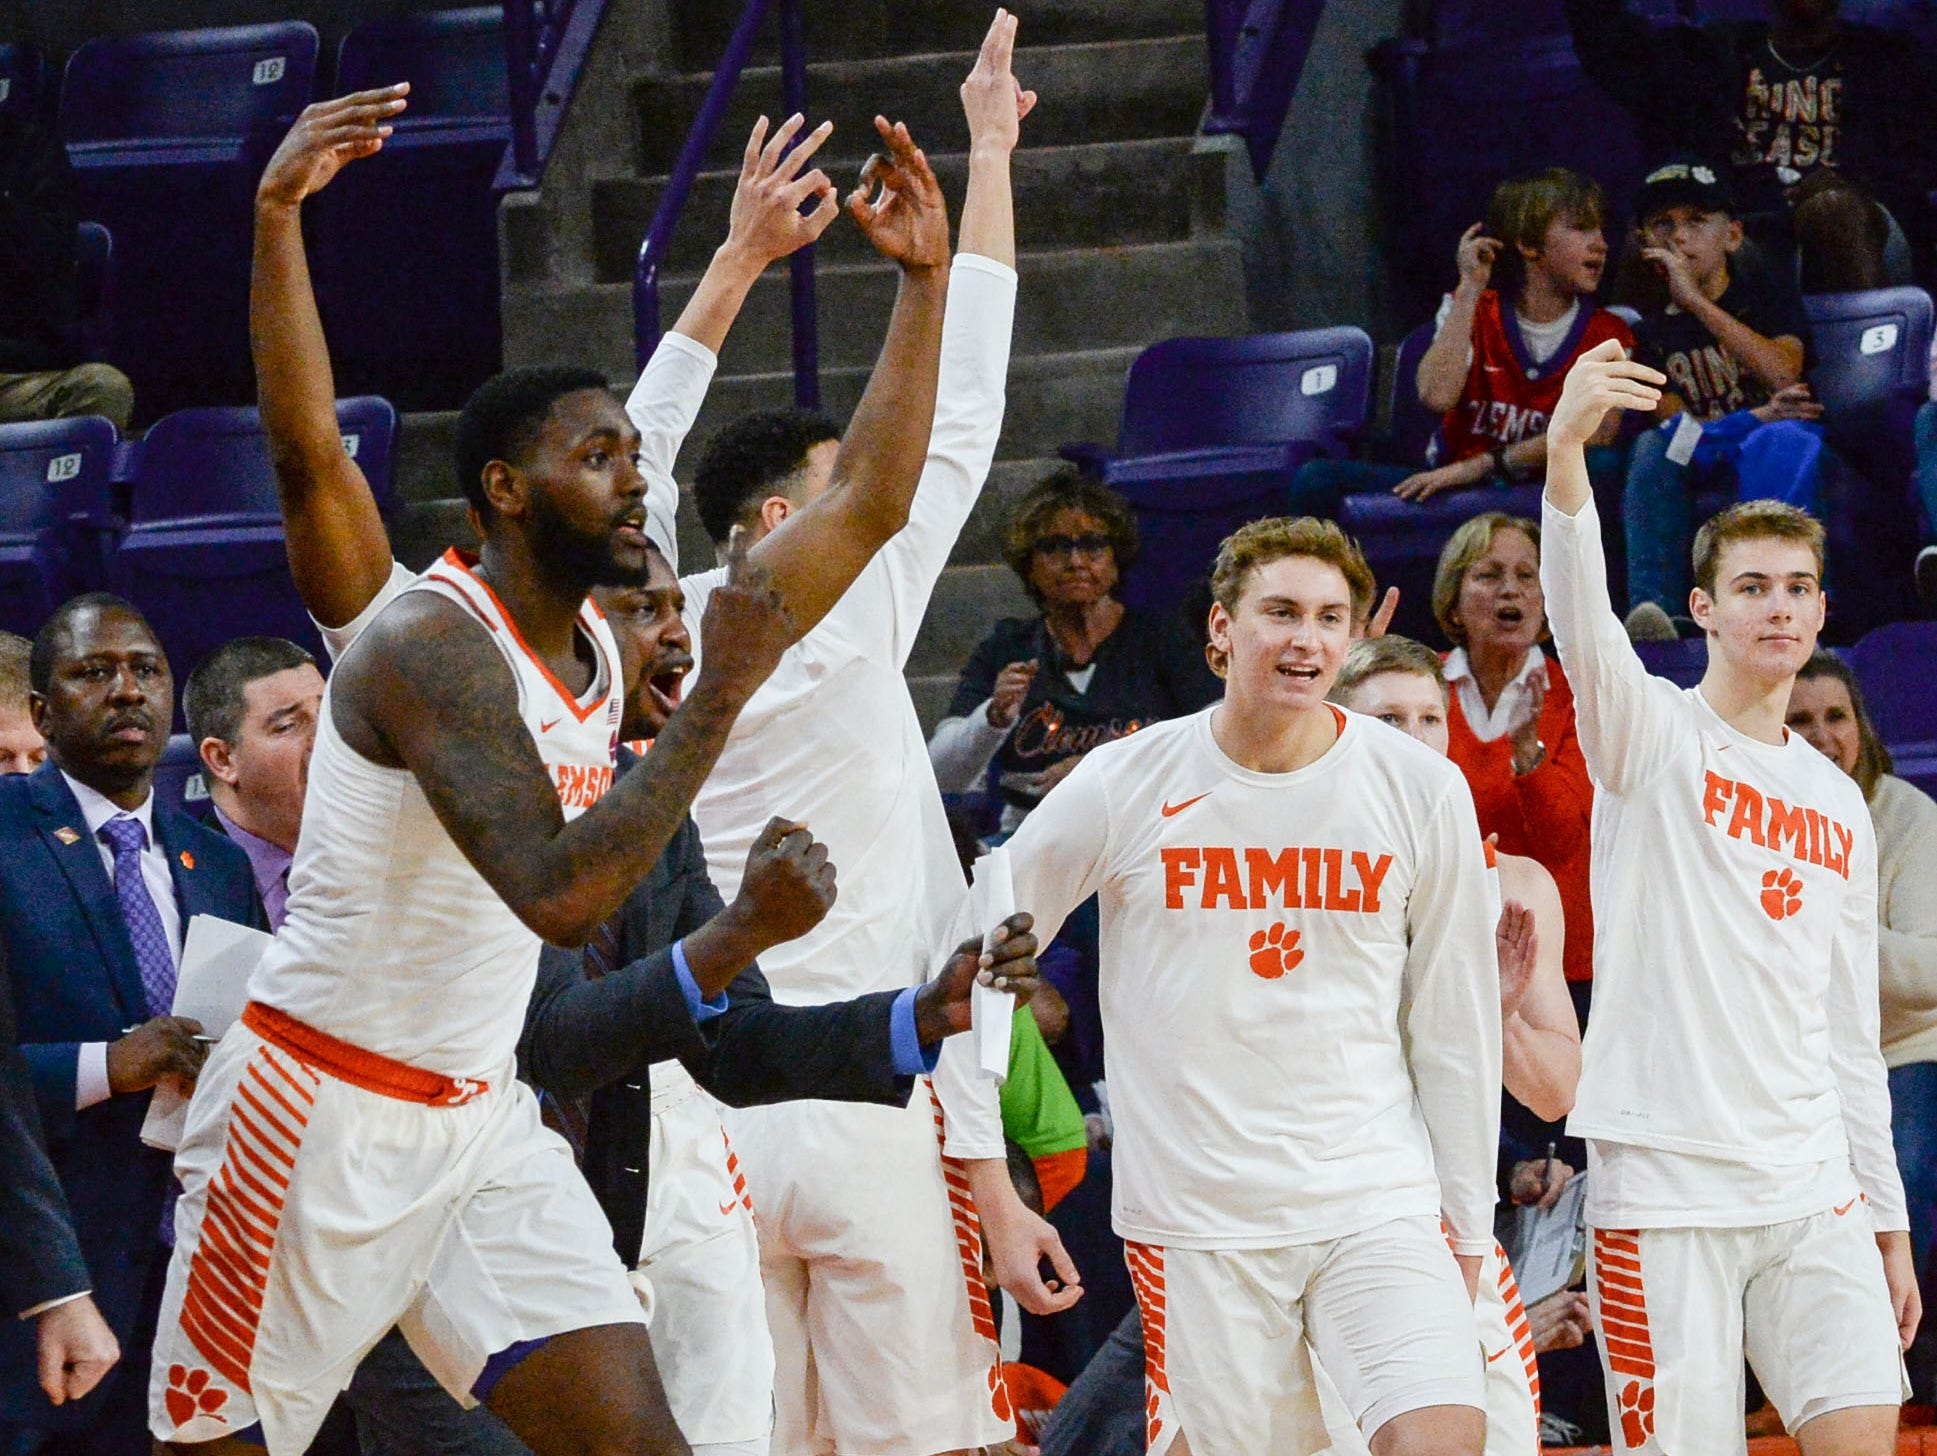 Clemson forward Elijah Thomas (14), left, and teammates celebrate a score against Wright State during the second half of the NIT at Littlejohn Coliseum in Clemson Tuesday, March 19, 2019.